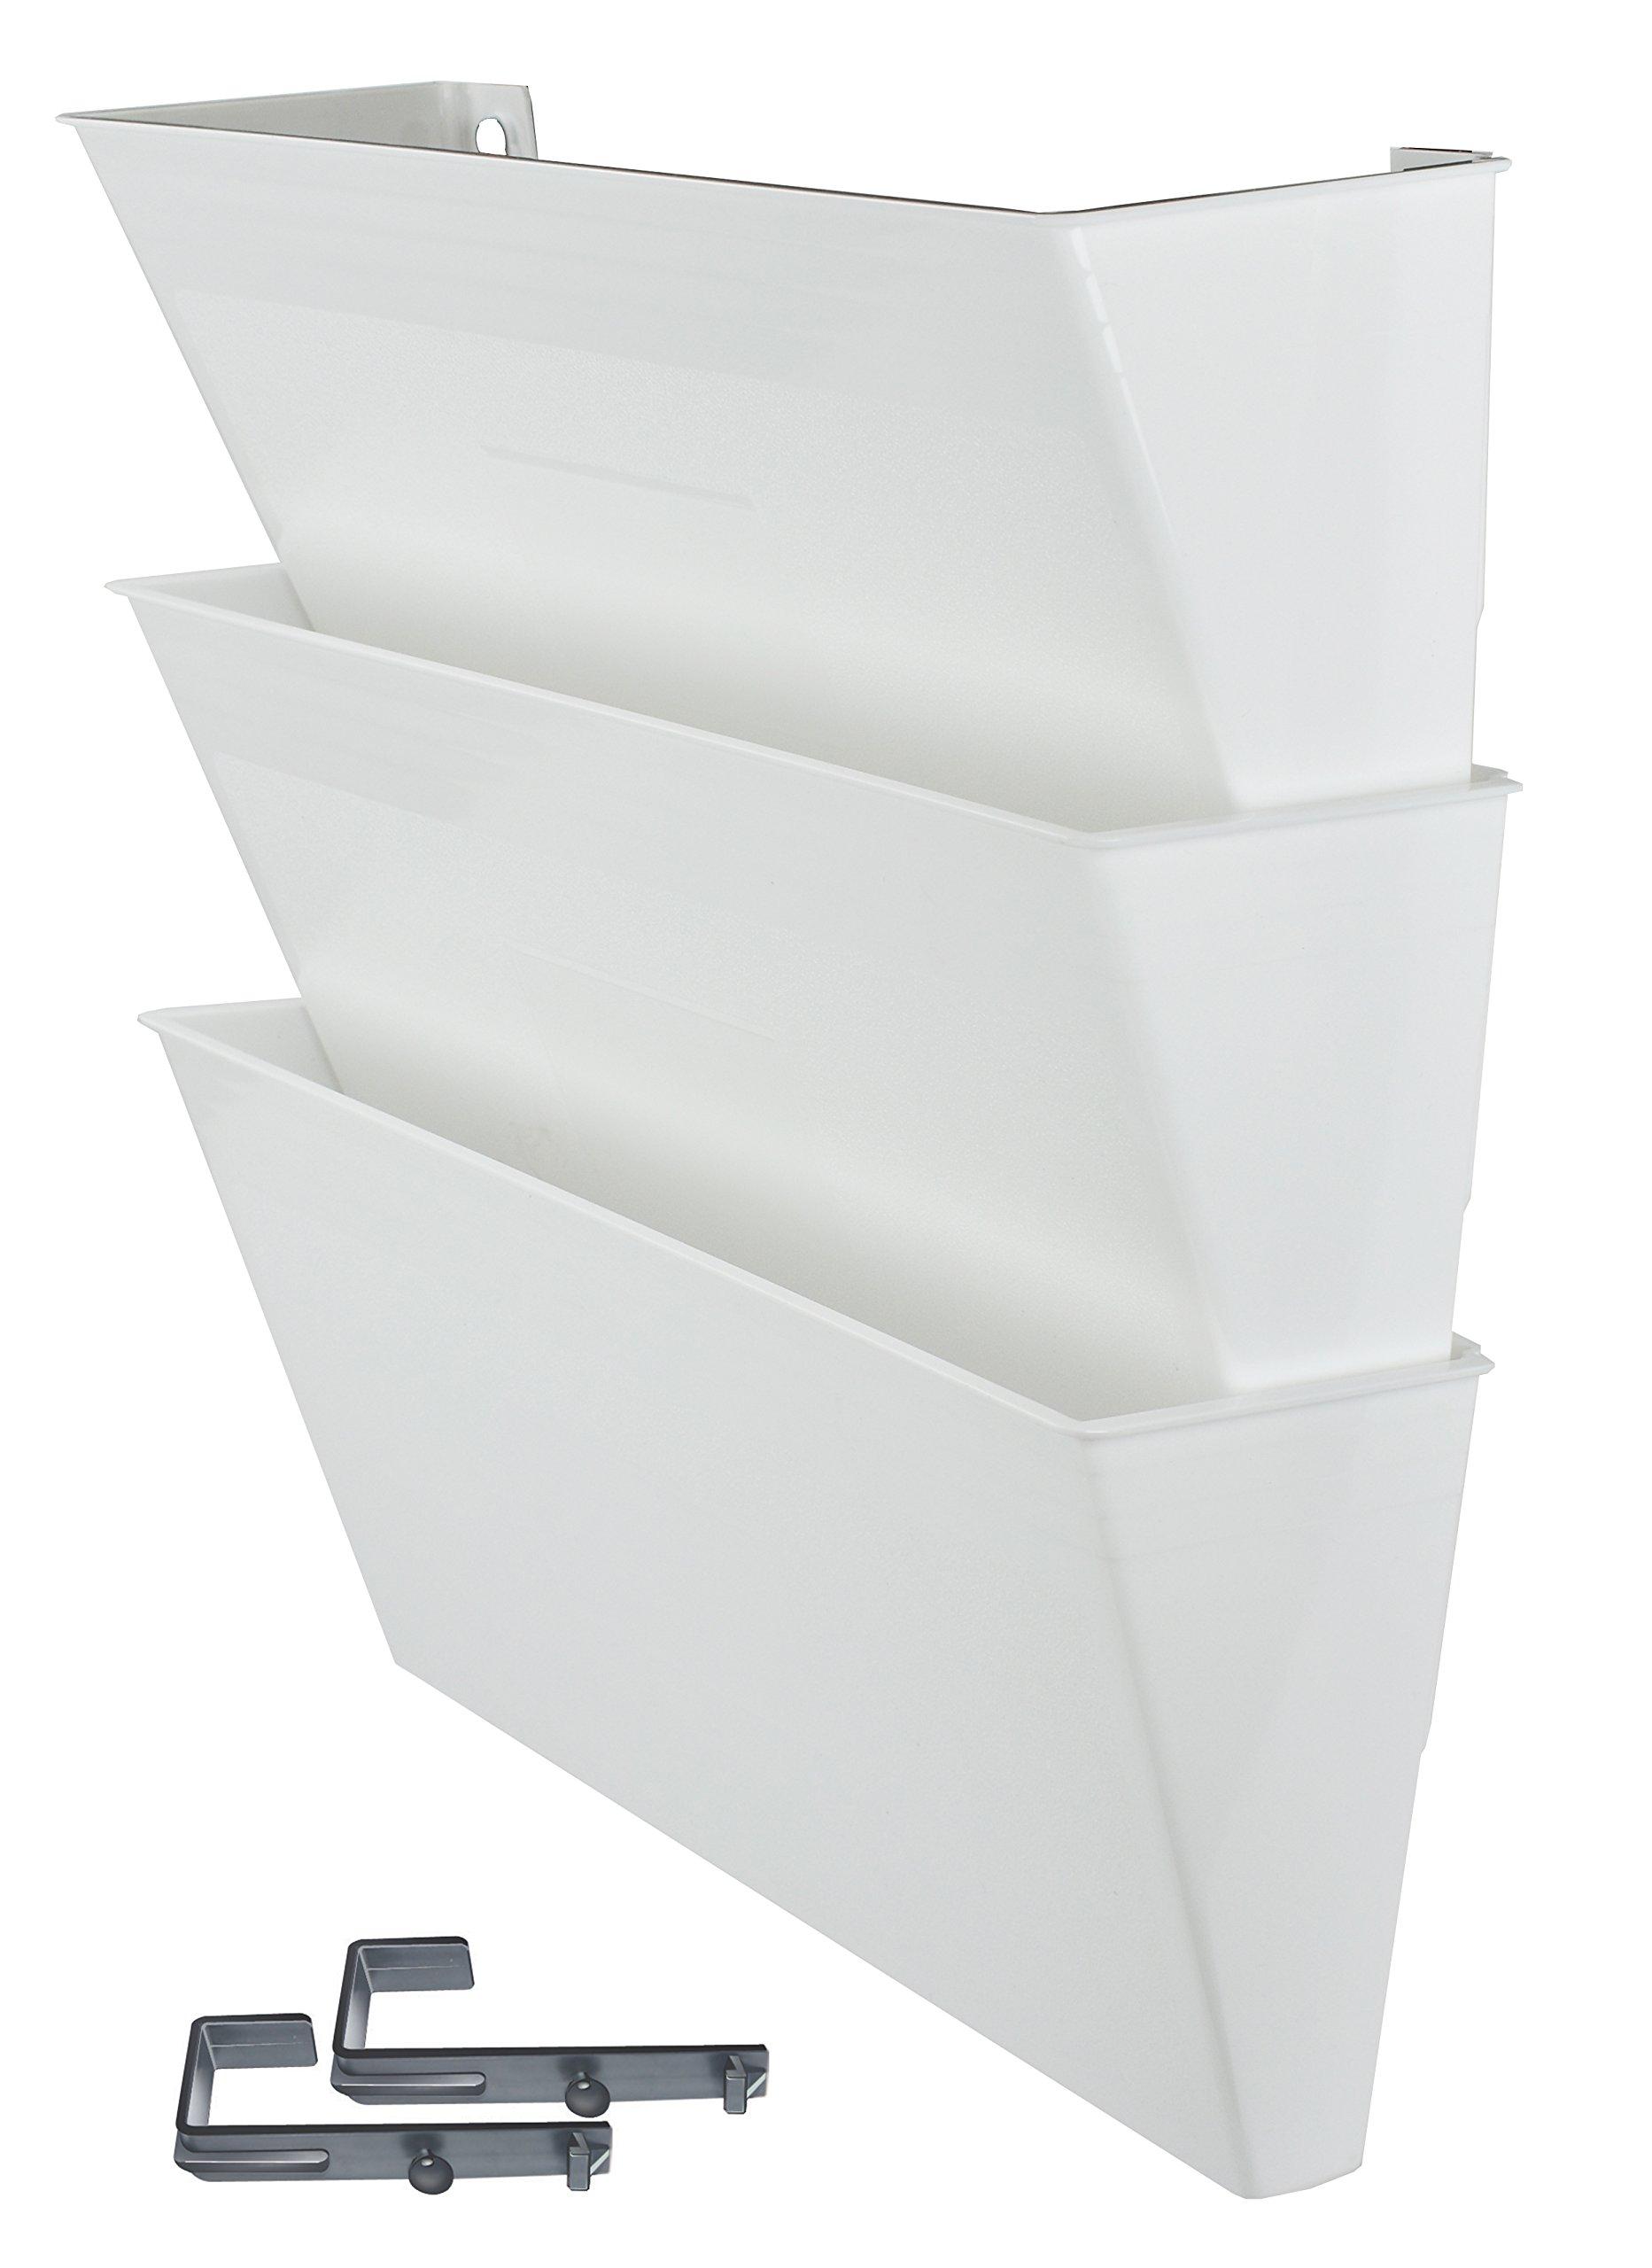 Acrimet Wall-mounted Modular File Holder (3 - Pack) (White Color)